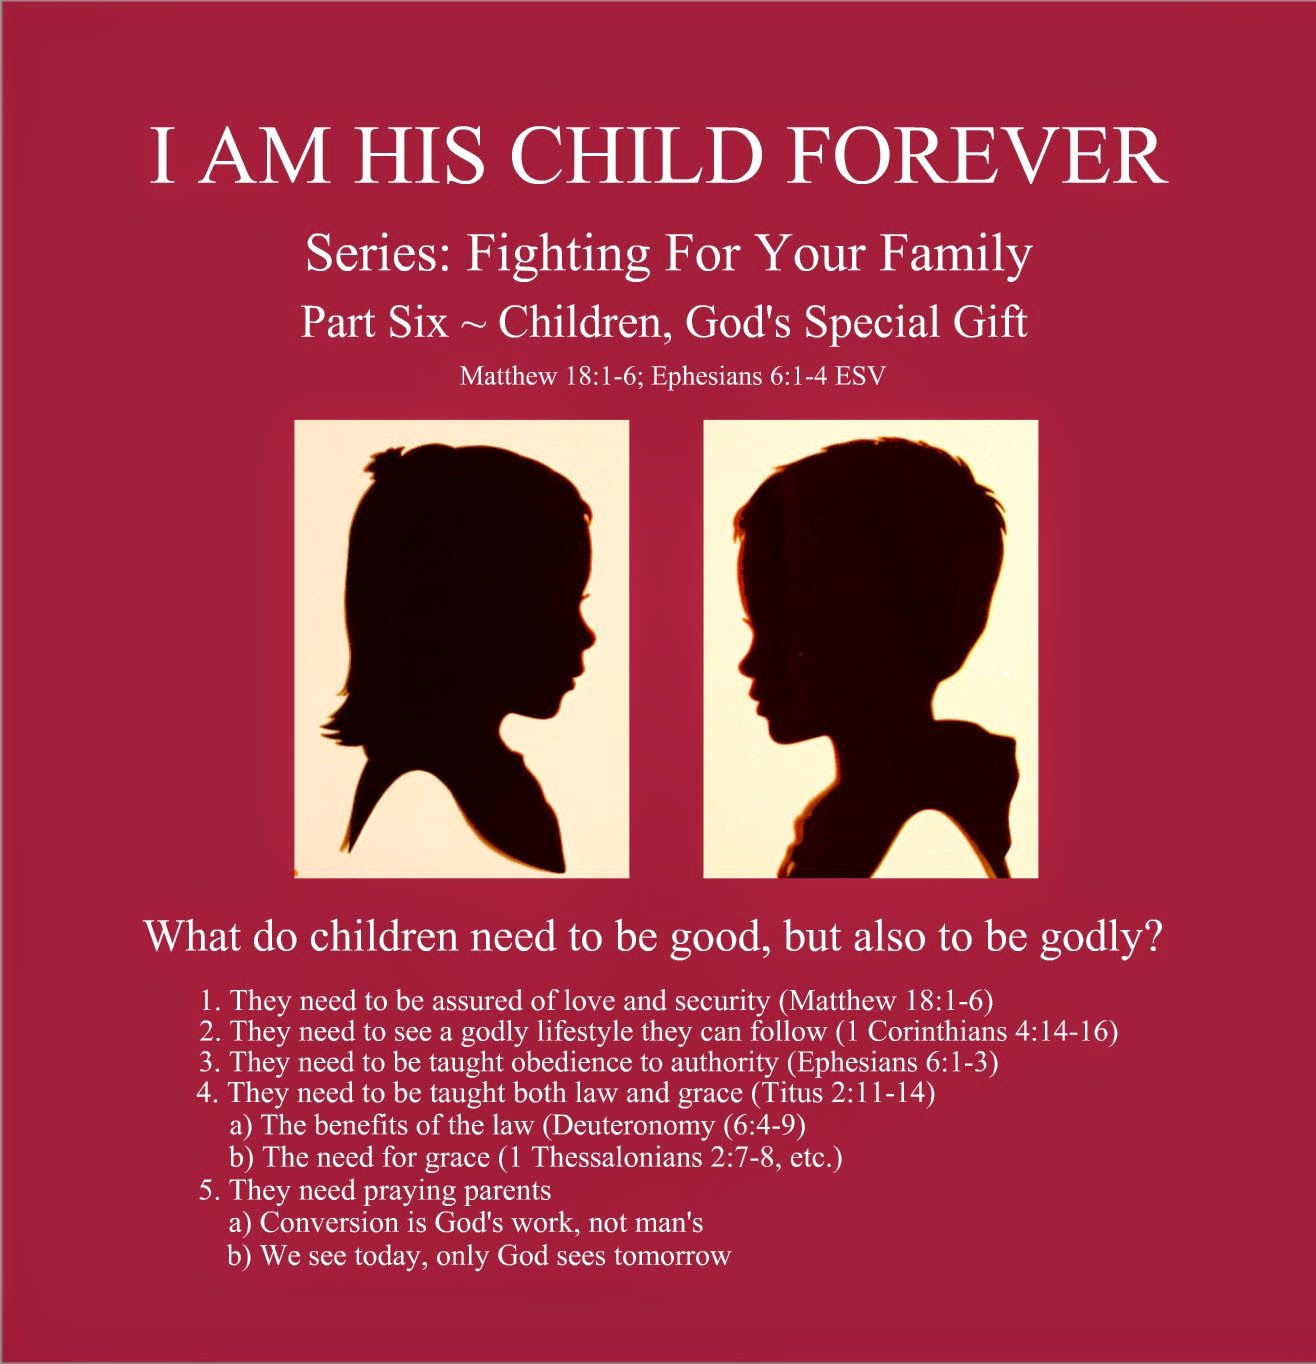 Series: Fighting For Your Family